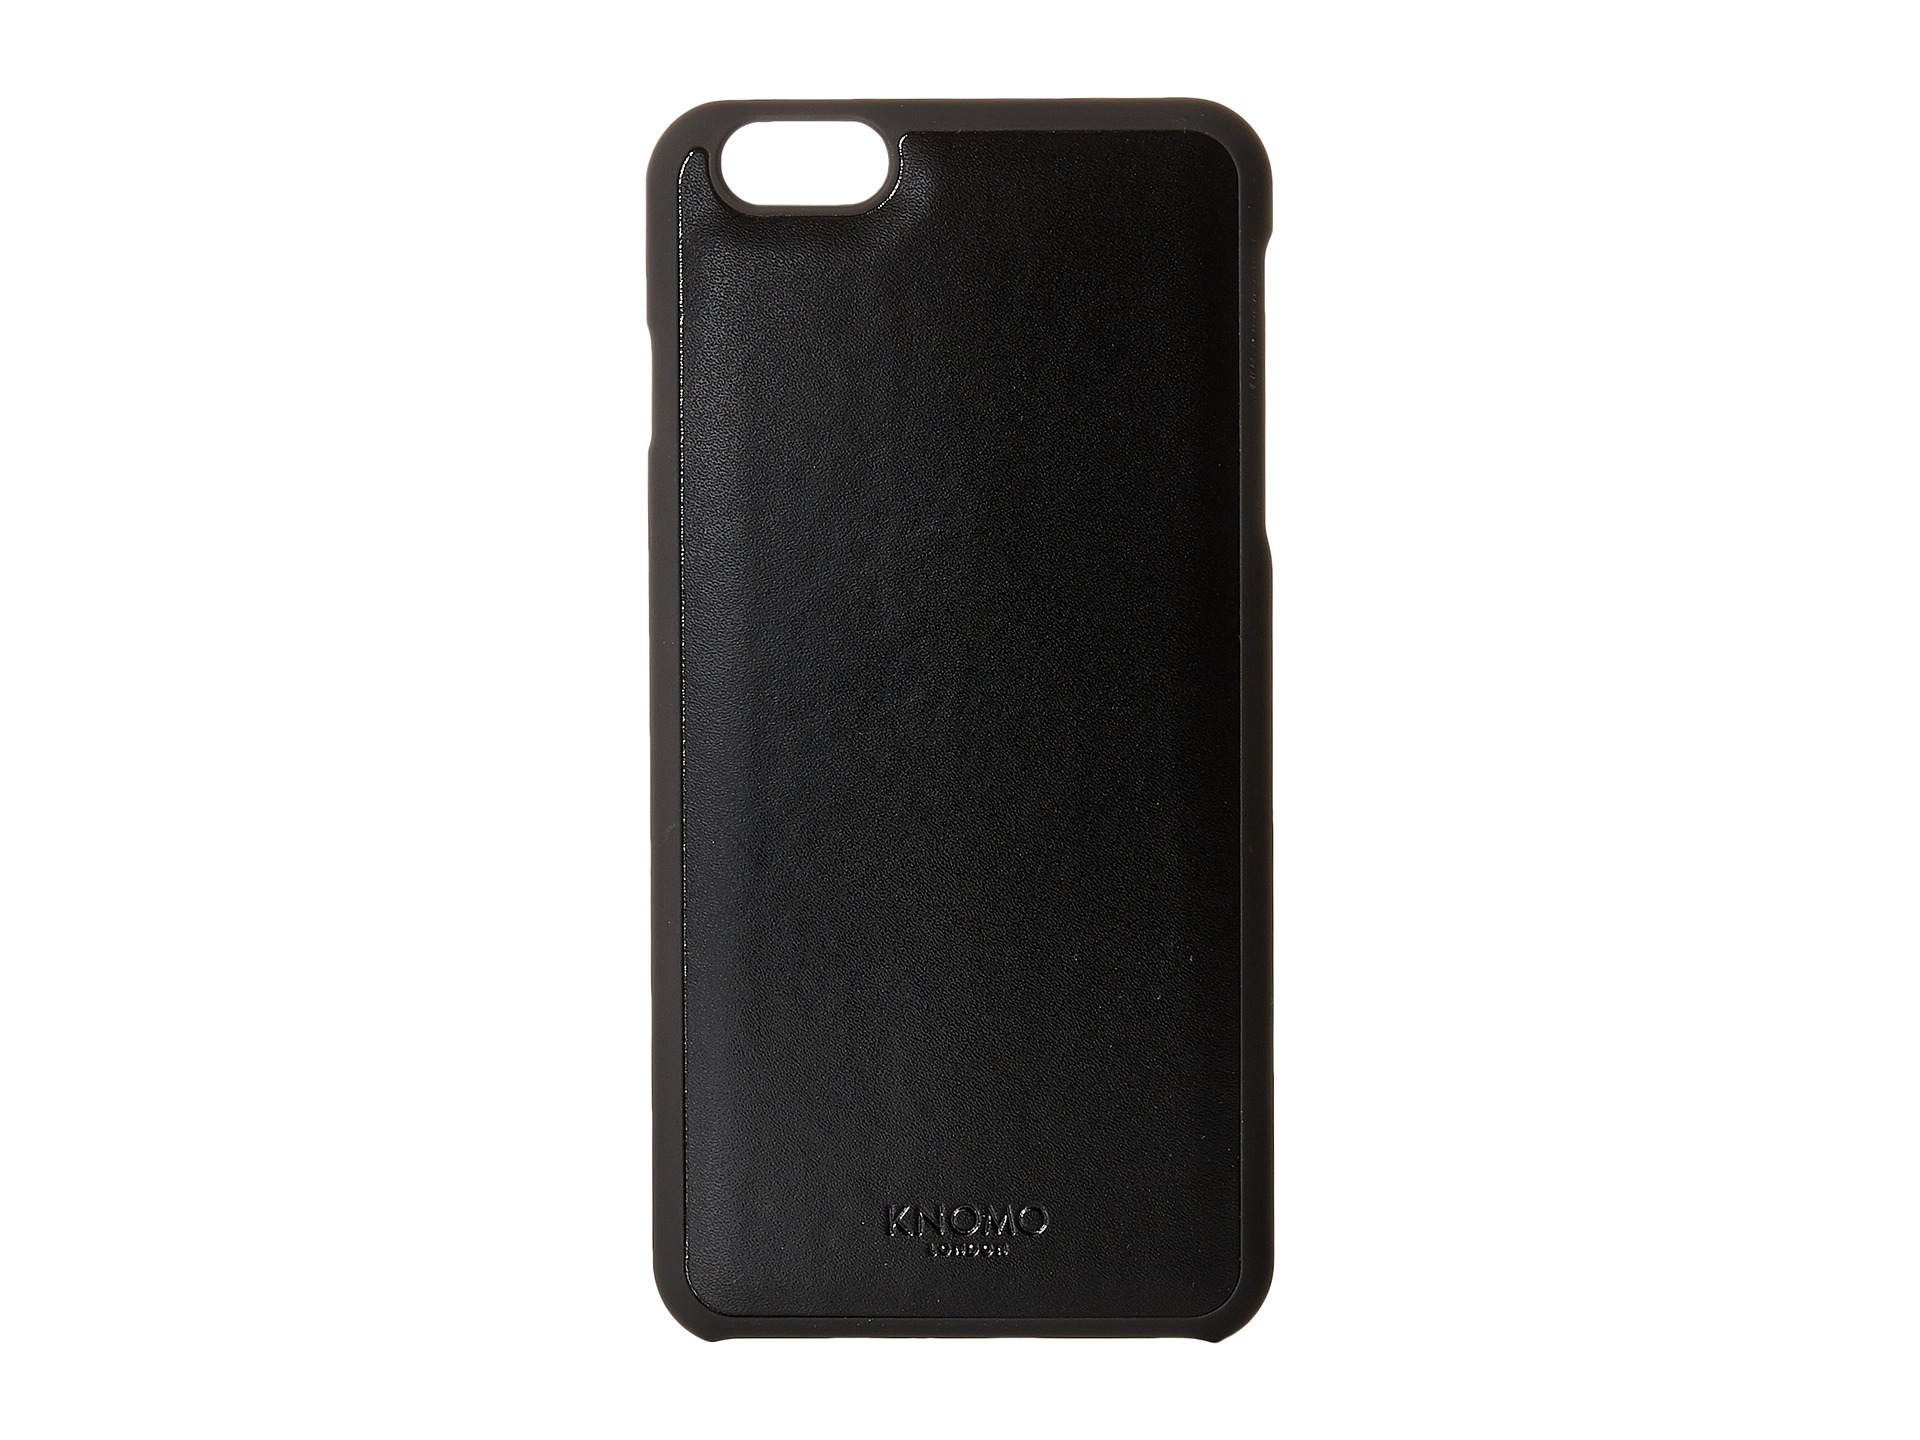 Knomo Magnet Open Face Iphone 6/6s Plus Case in Black for ...